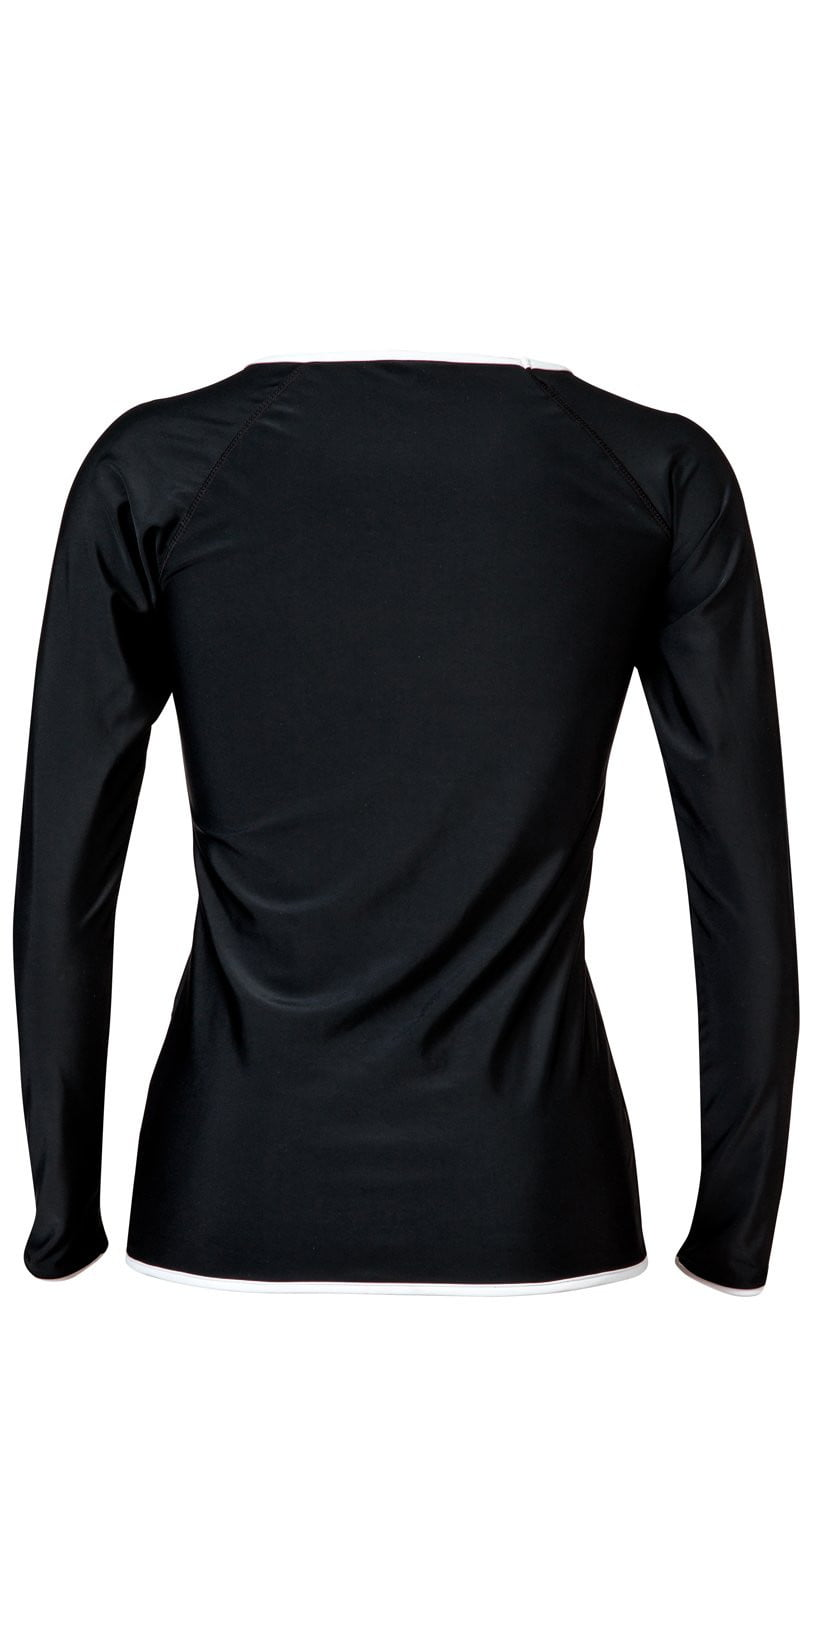 Snapperrock Ladies Black with White Trim Rashguard Top L20002L: